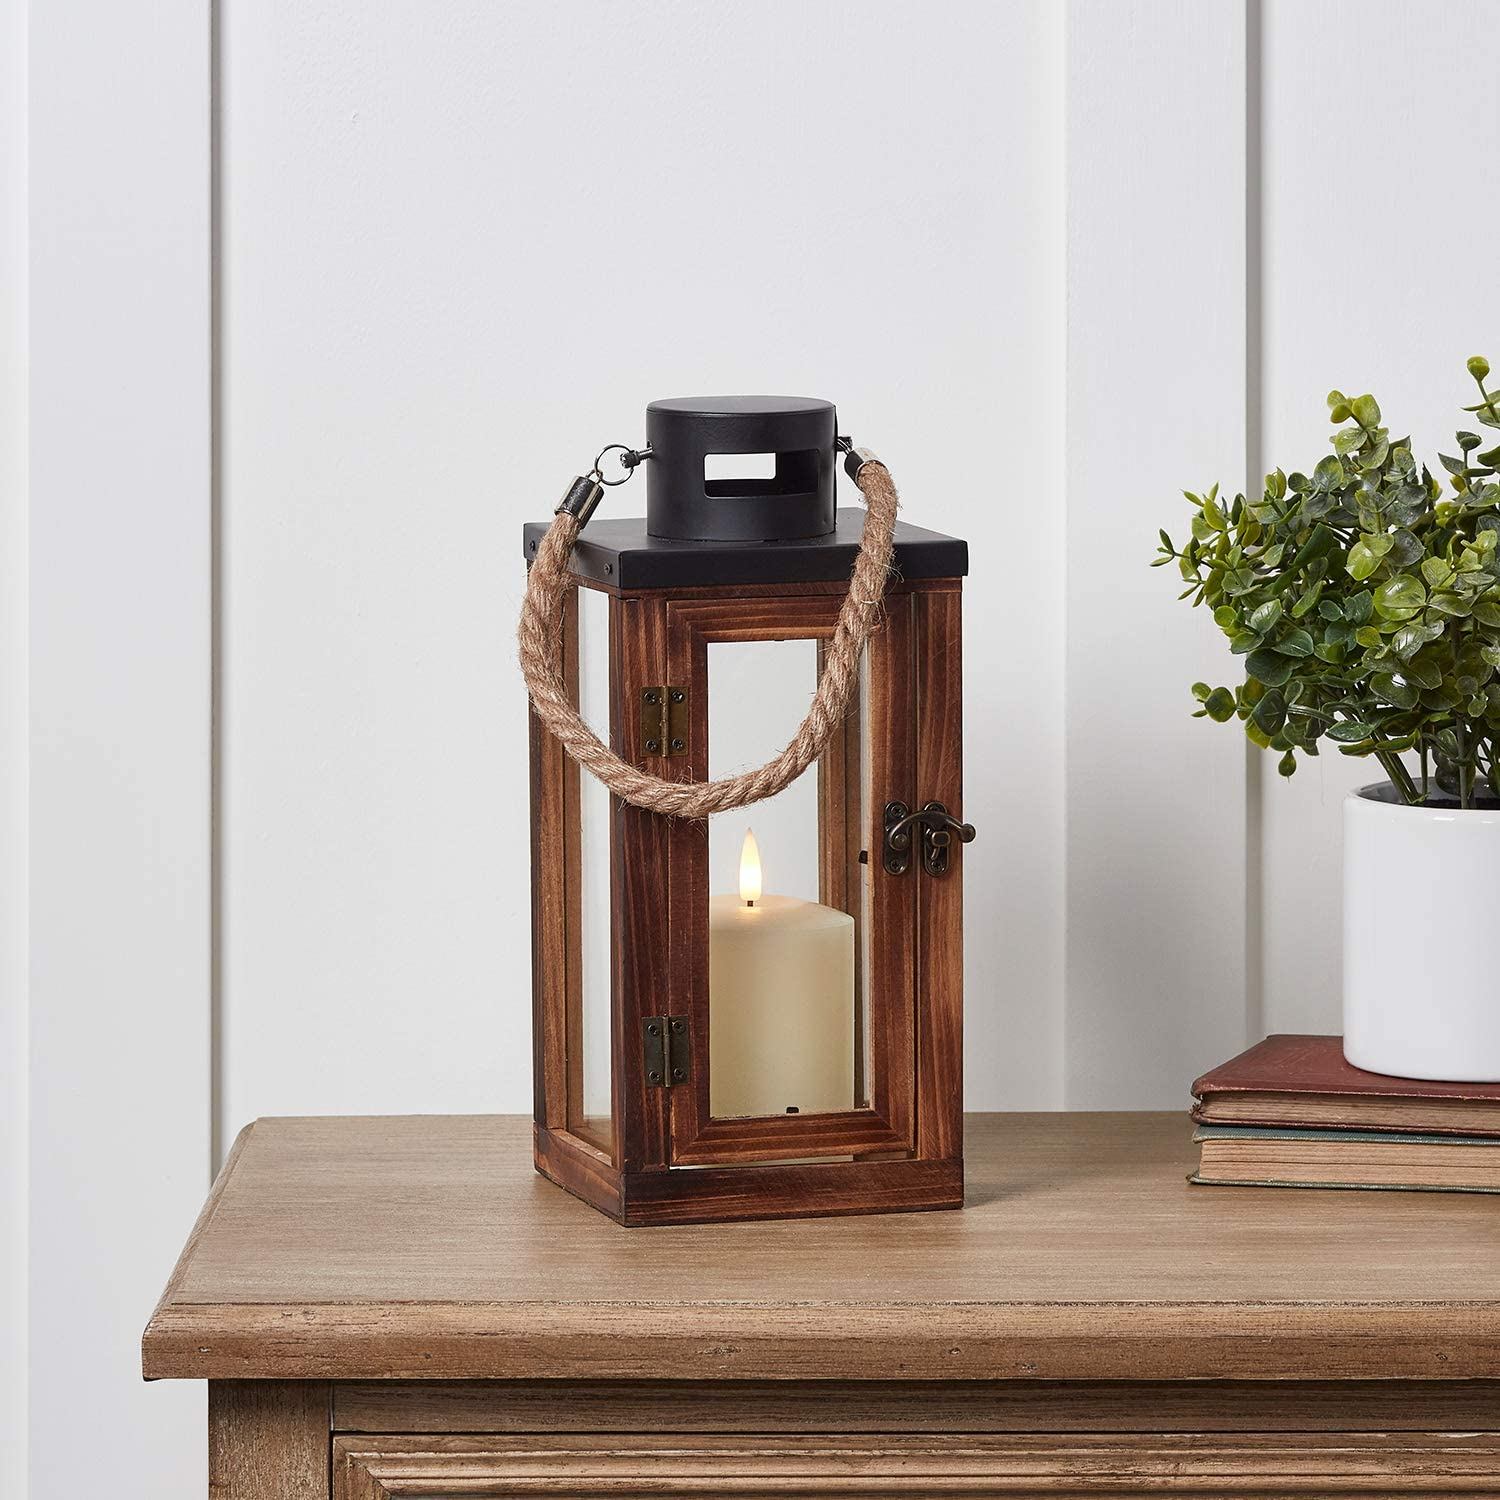 Lights4fun, Inc. Regular Wooden Indoor Battery Operated LED Flameless Candle Lantern